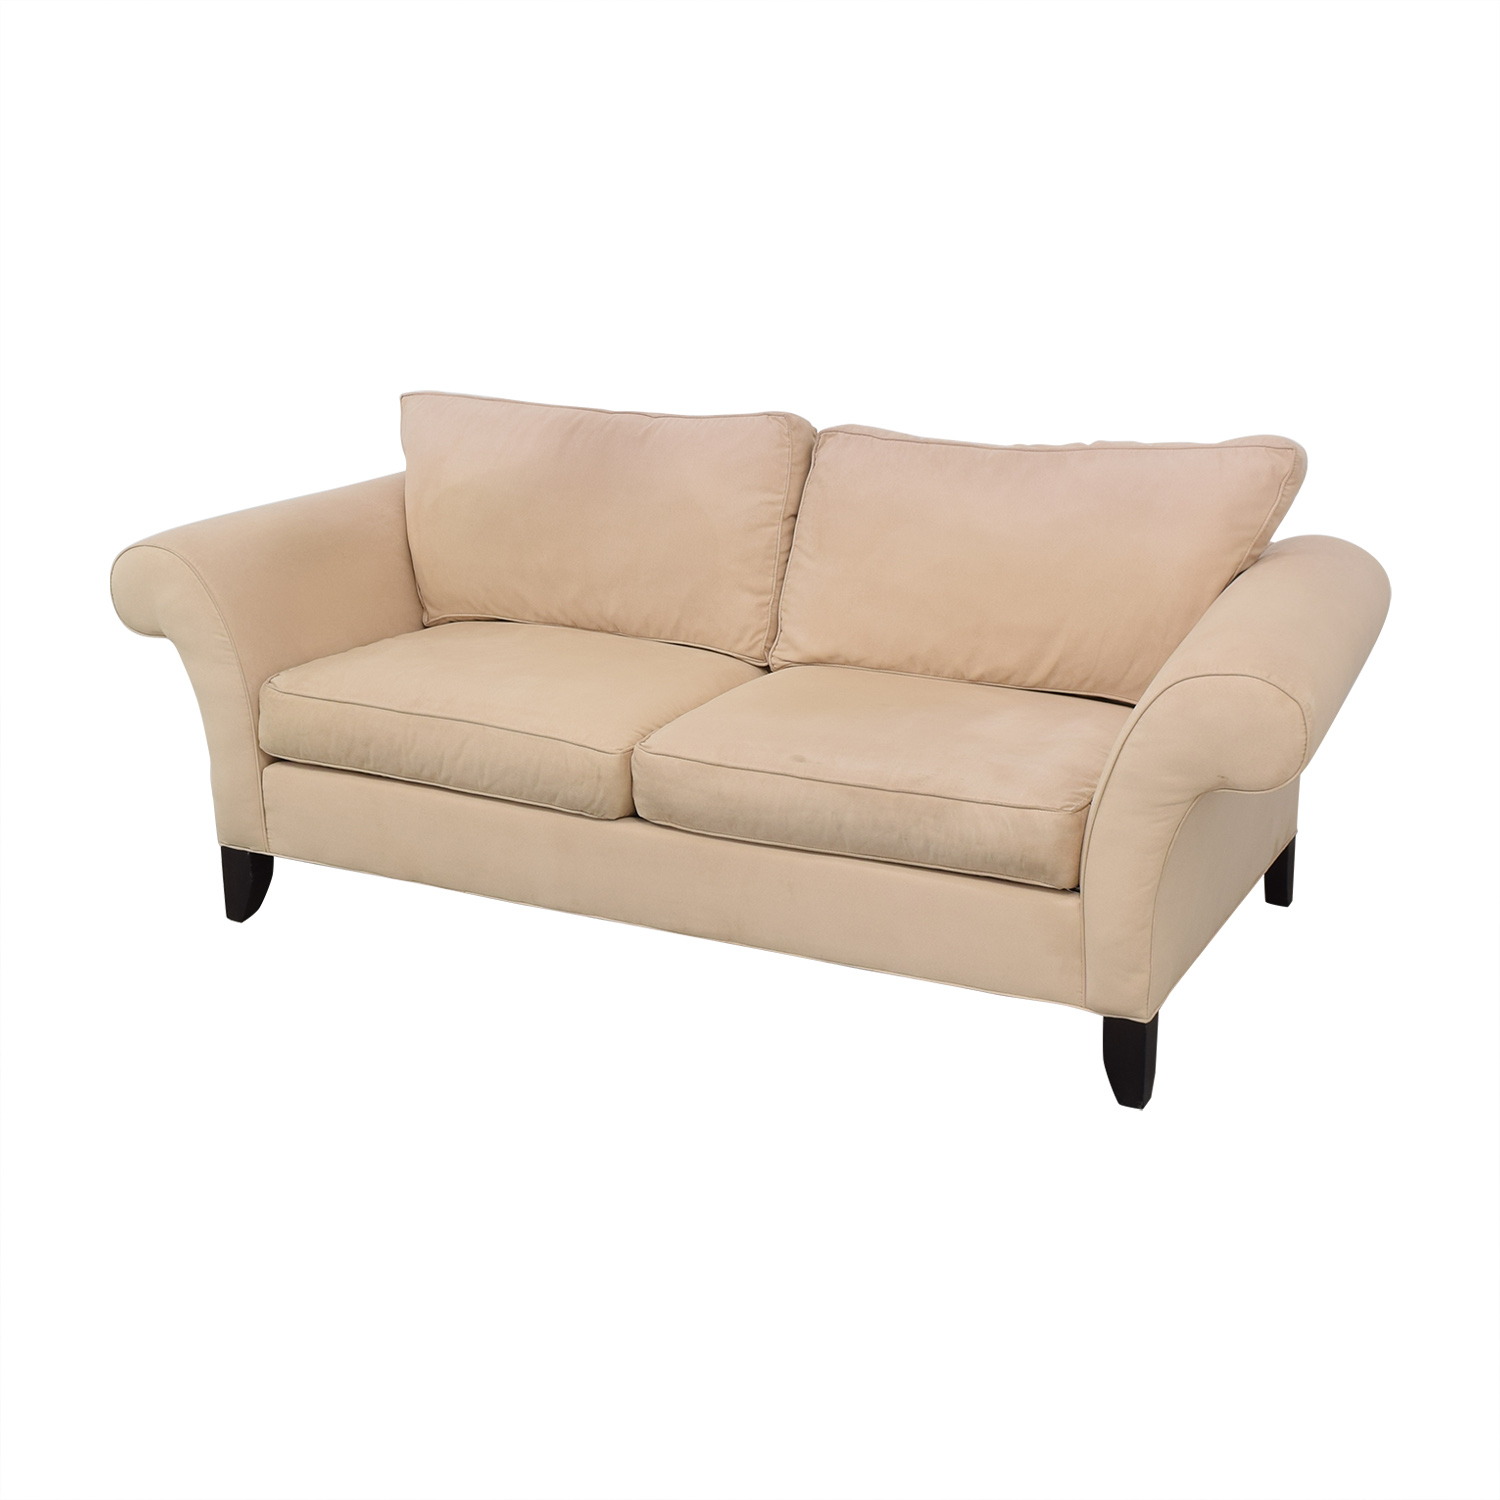 89% Off – Ethan Allen Ethan Allen Roll Arm Sofa / Sofas Intended For Ethan Allen Sofas And Chairs (View 13 of 15)